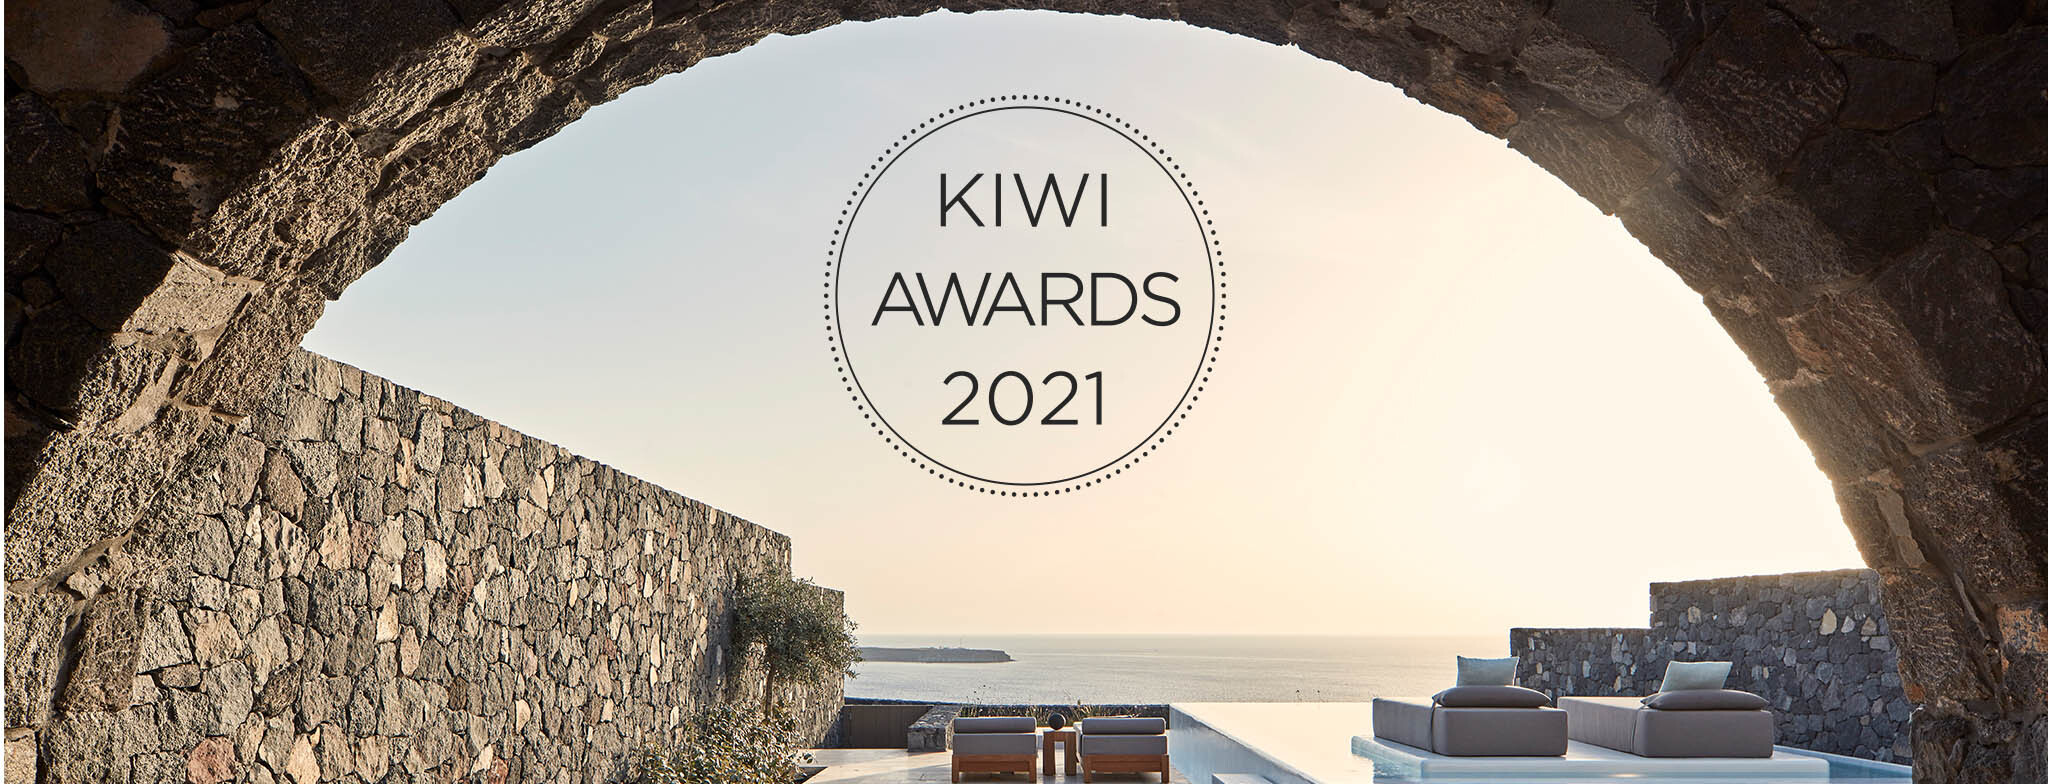 Kiwi Collection Hotel Awards 2021